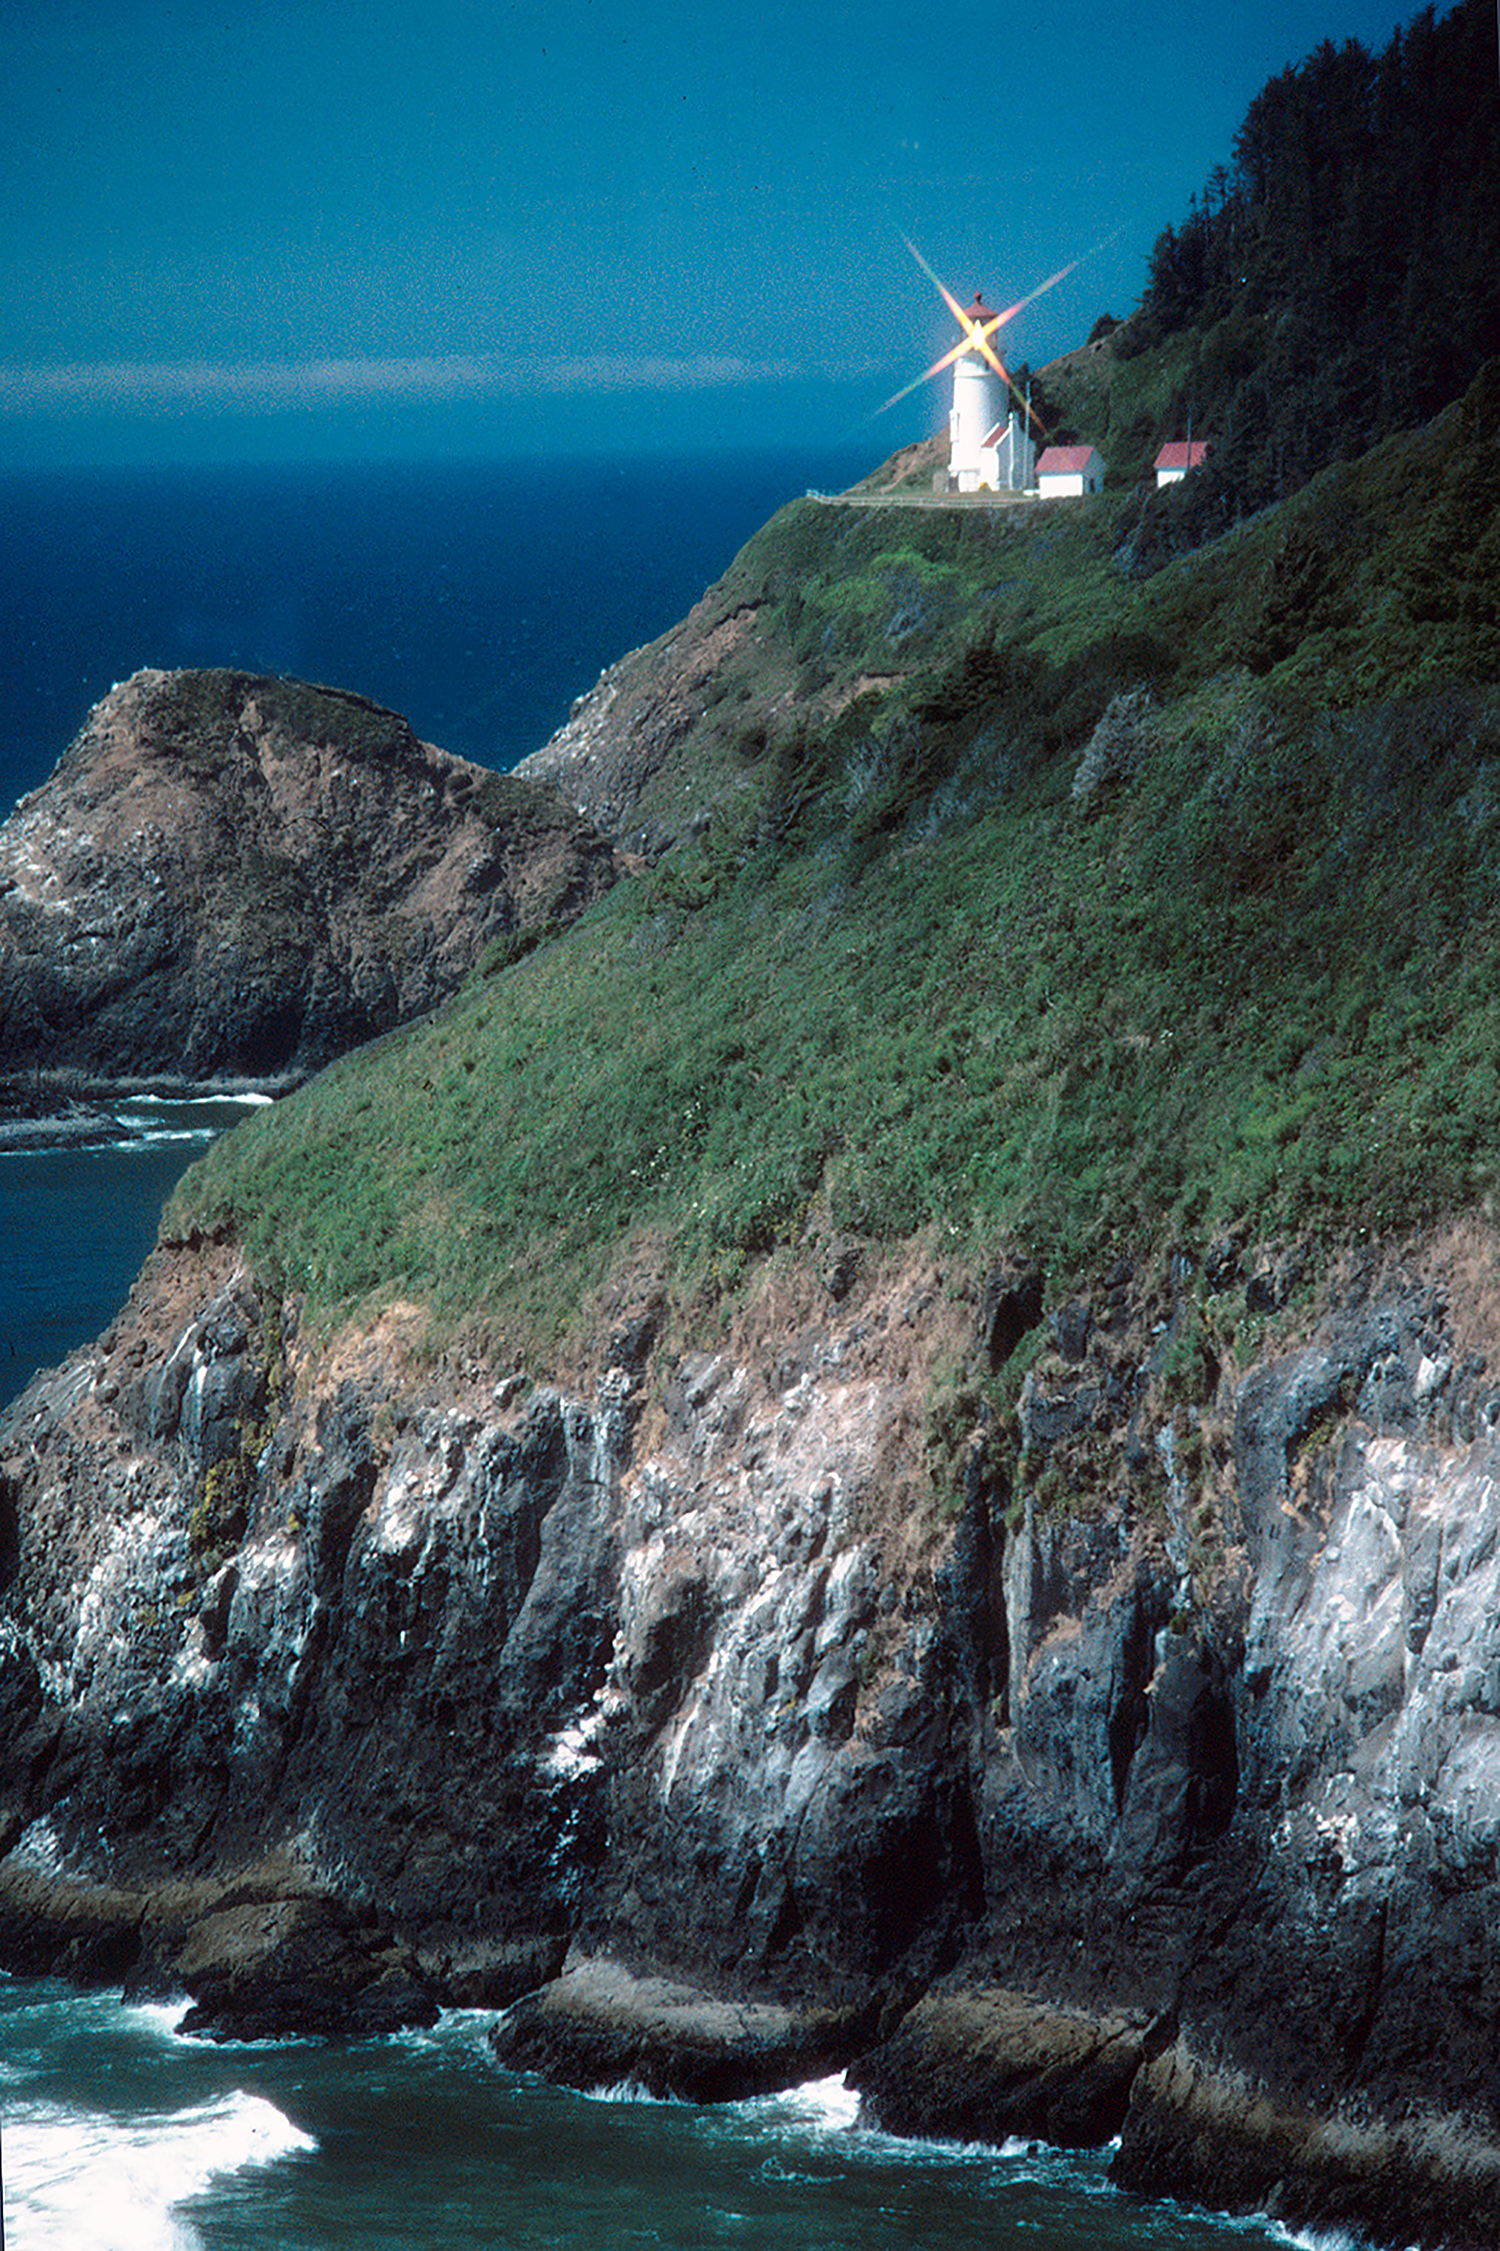 The Heceta Head Light